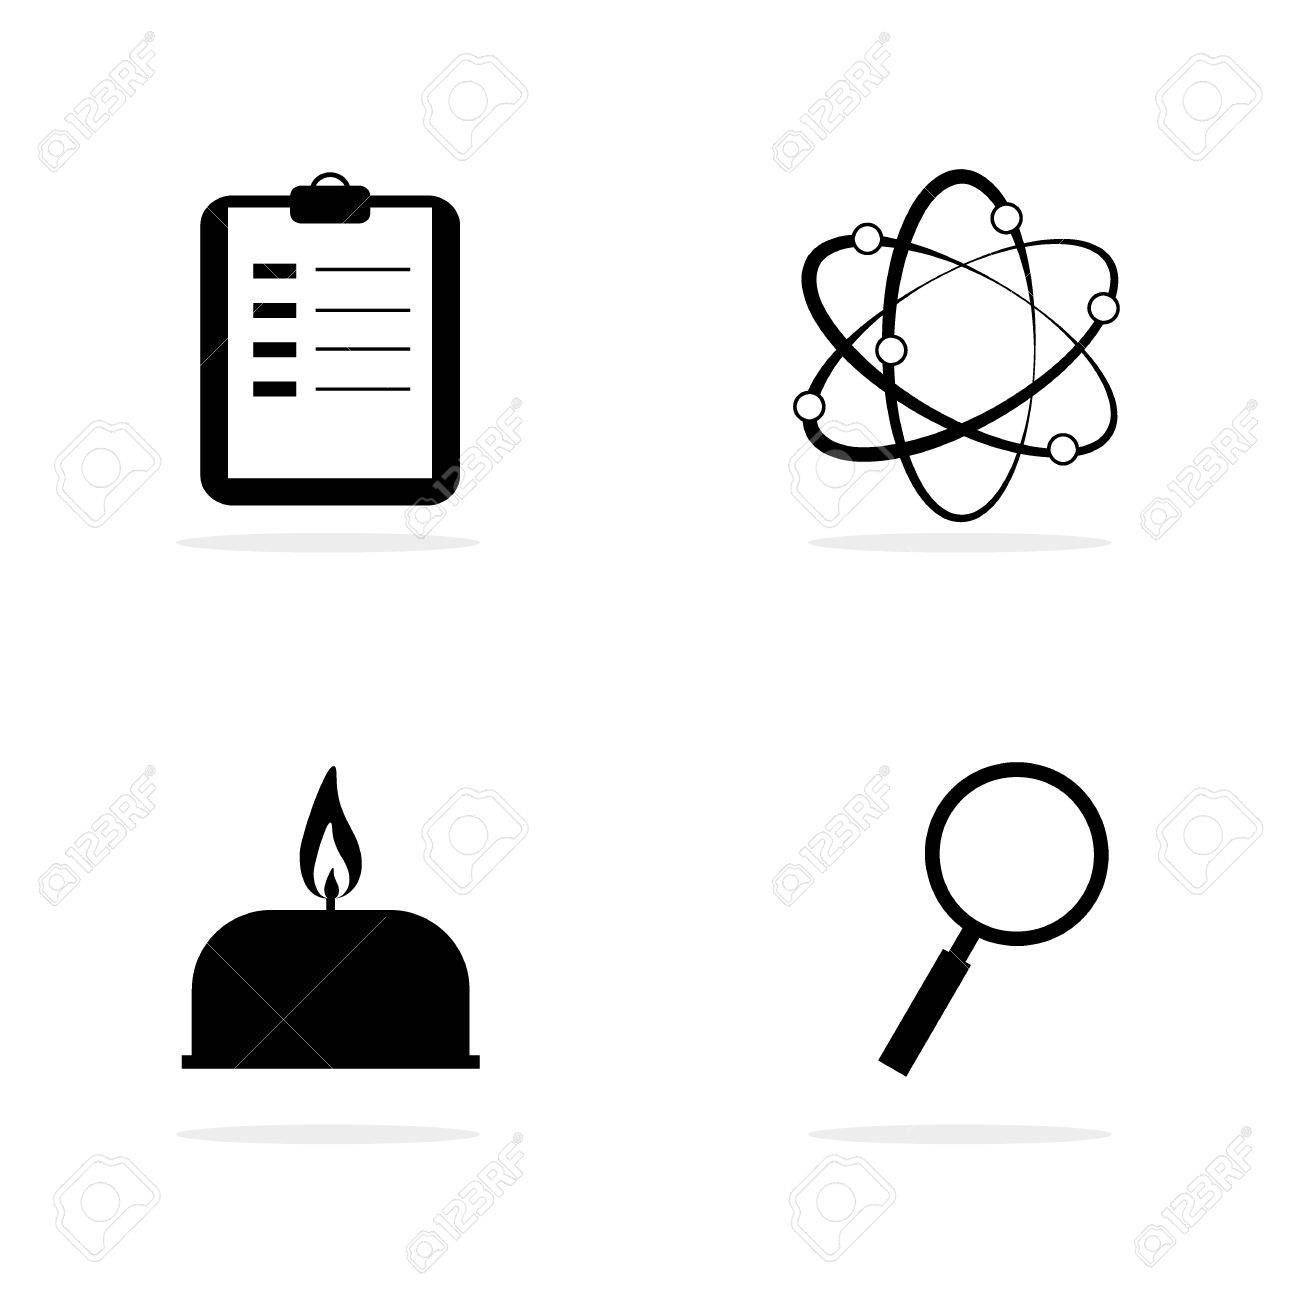 Science Lab Equipment And Symbol Iconvector Design Illustration Stock Vector